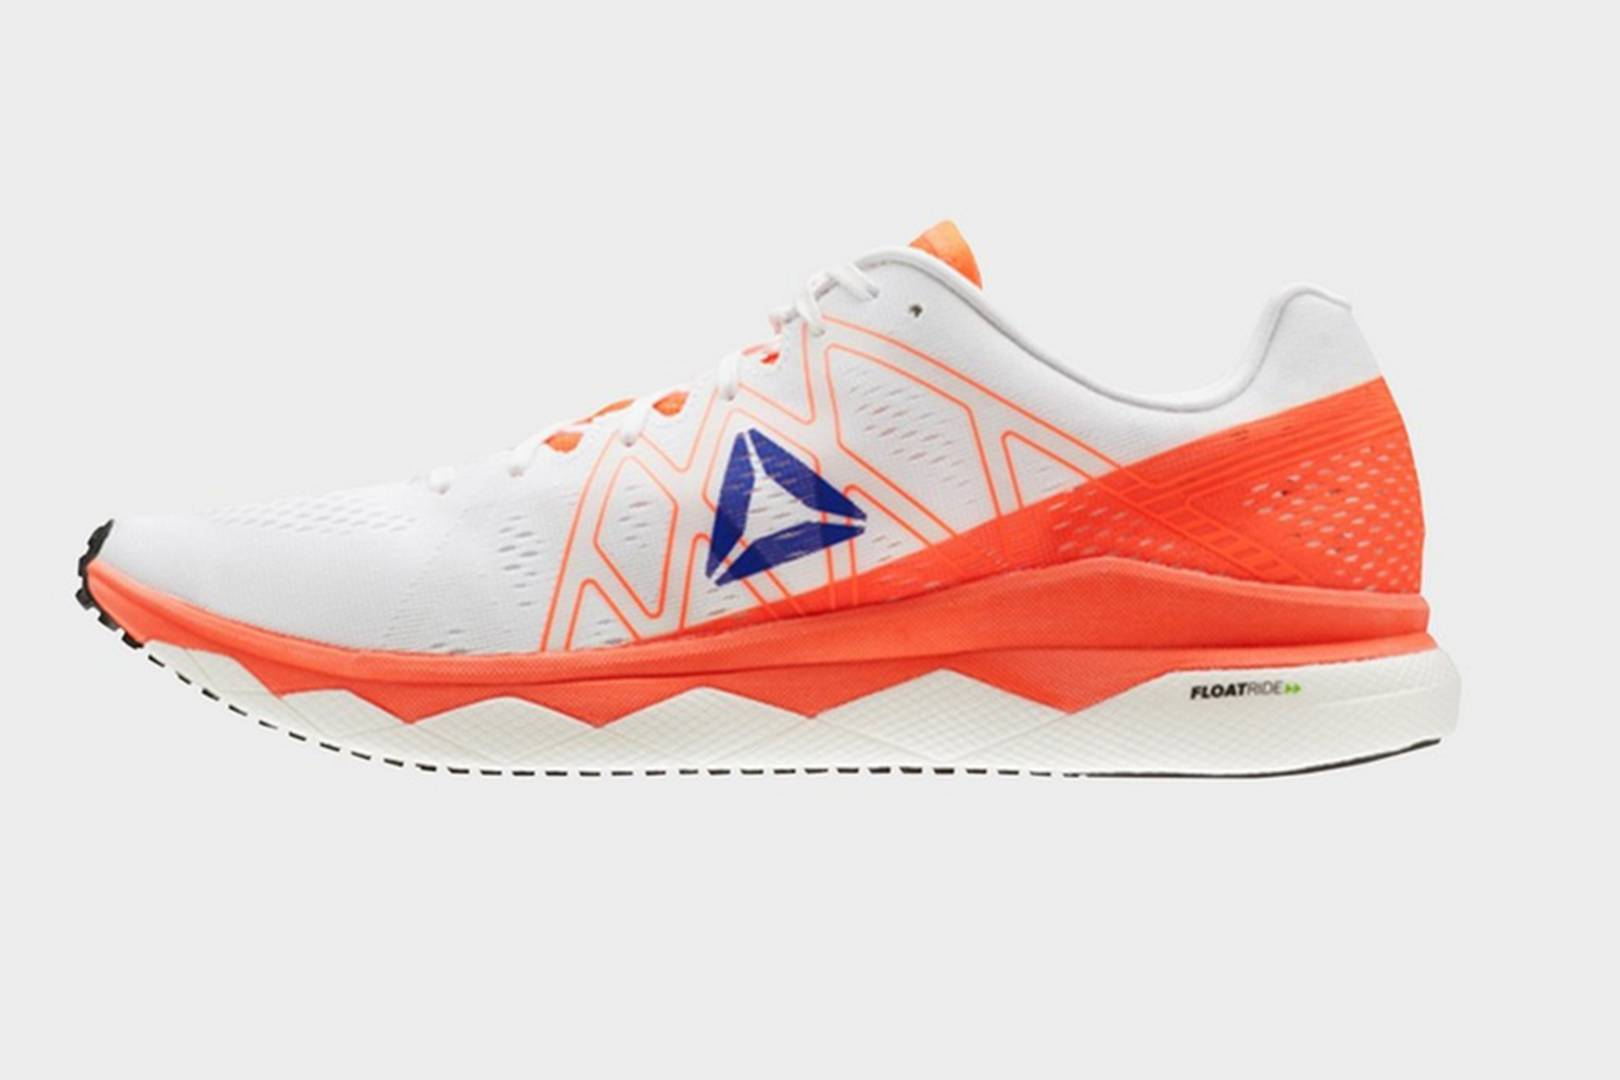 0086a4445acf Best running shoes for men